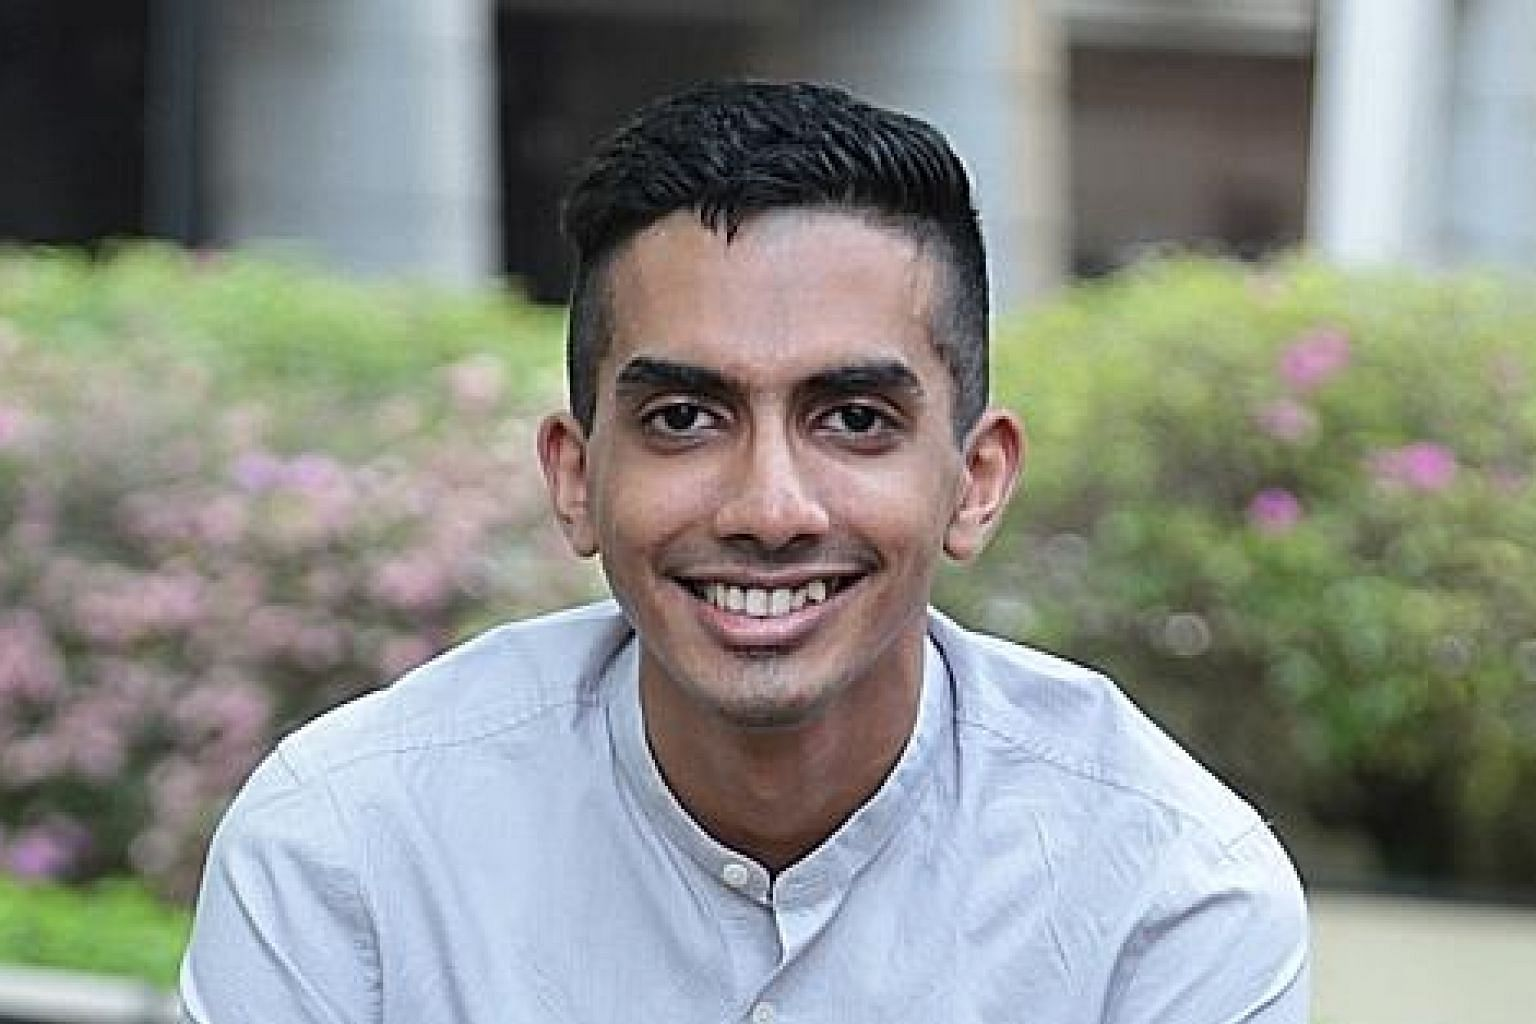 Mr Yudhishthra Nathan started volunteering with the Workers' Party while doing NS and says he was raised to be politically aware, with his father and grandfather taking him to political rallies when he was younger.